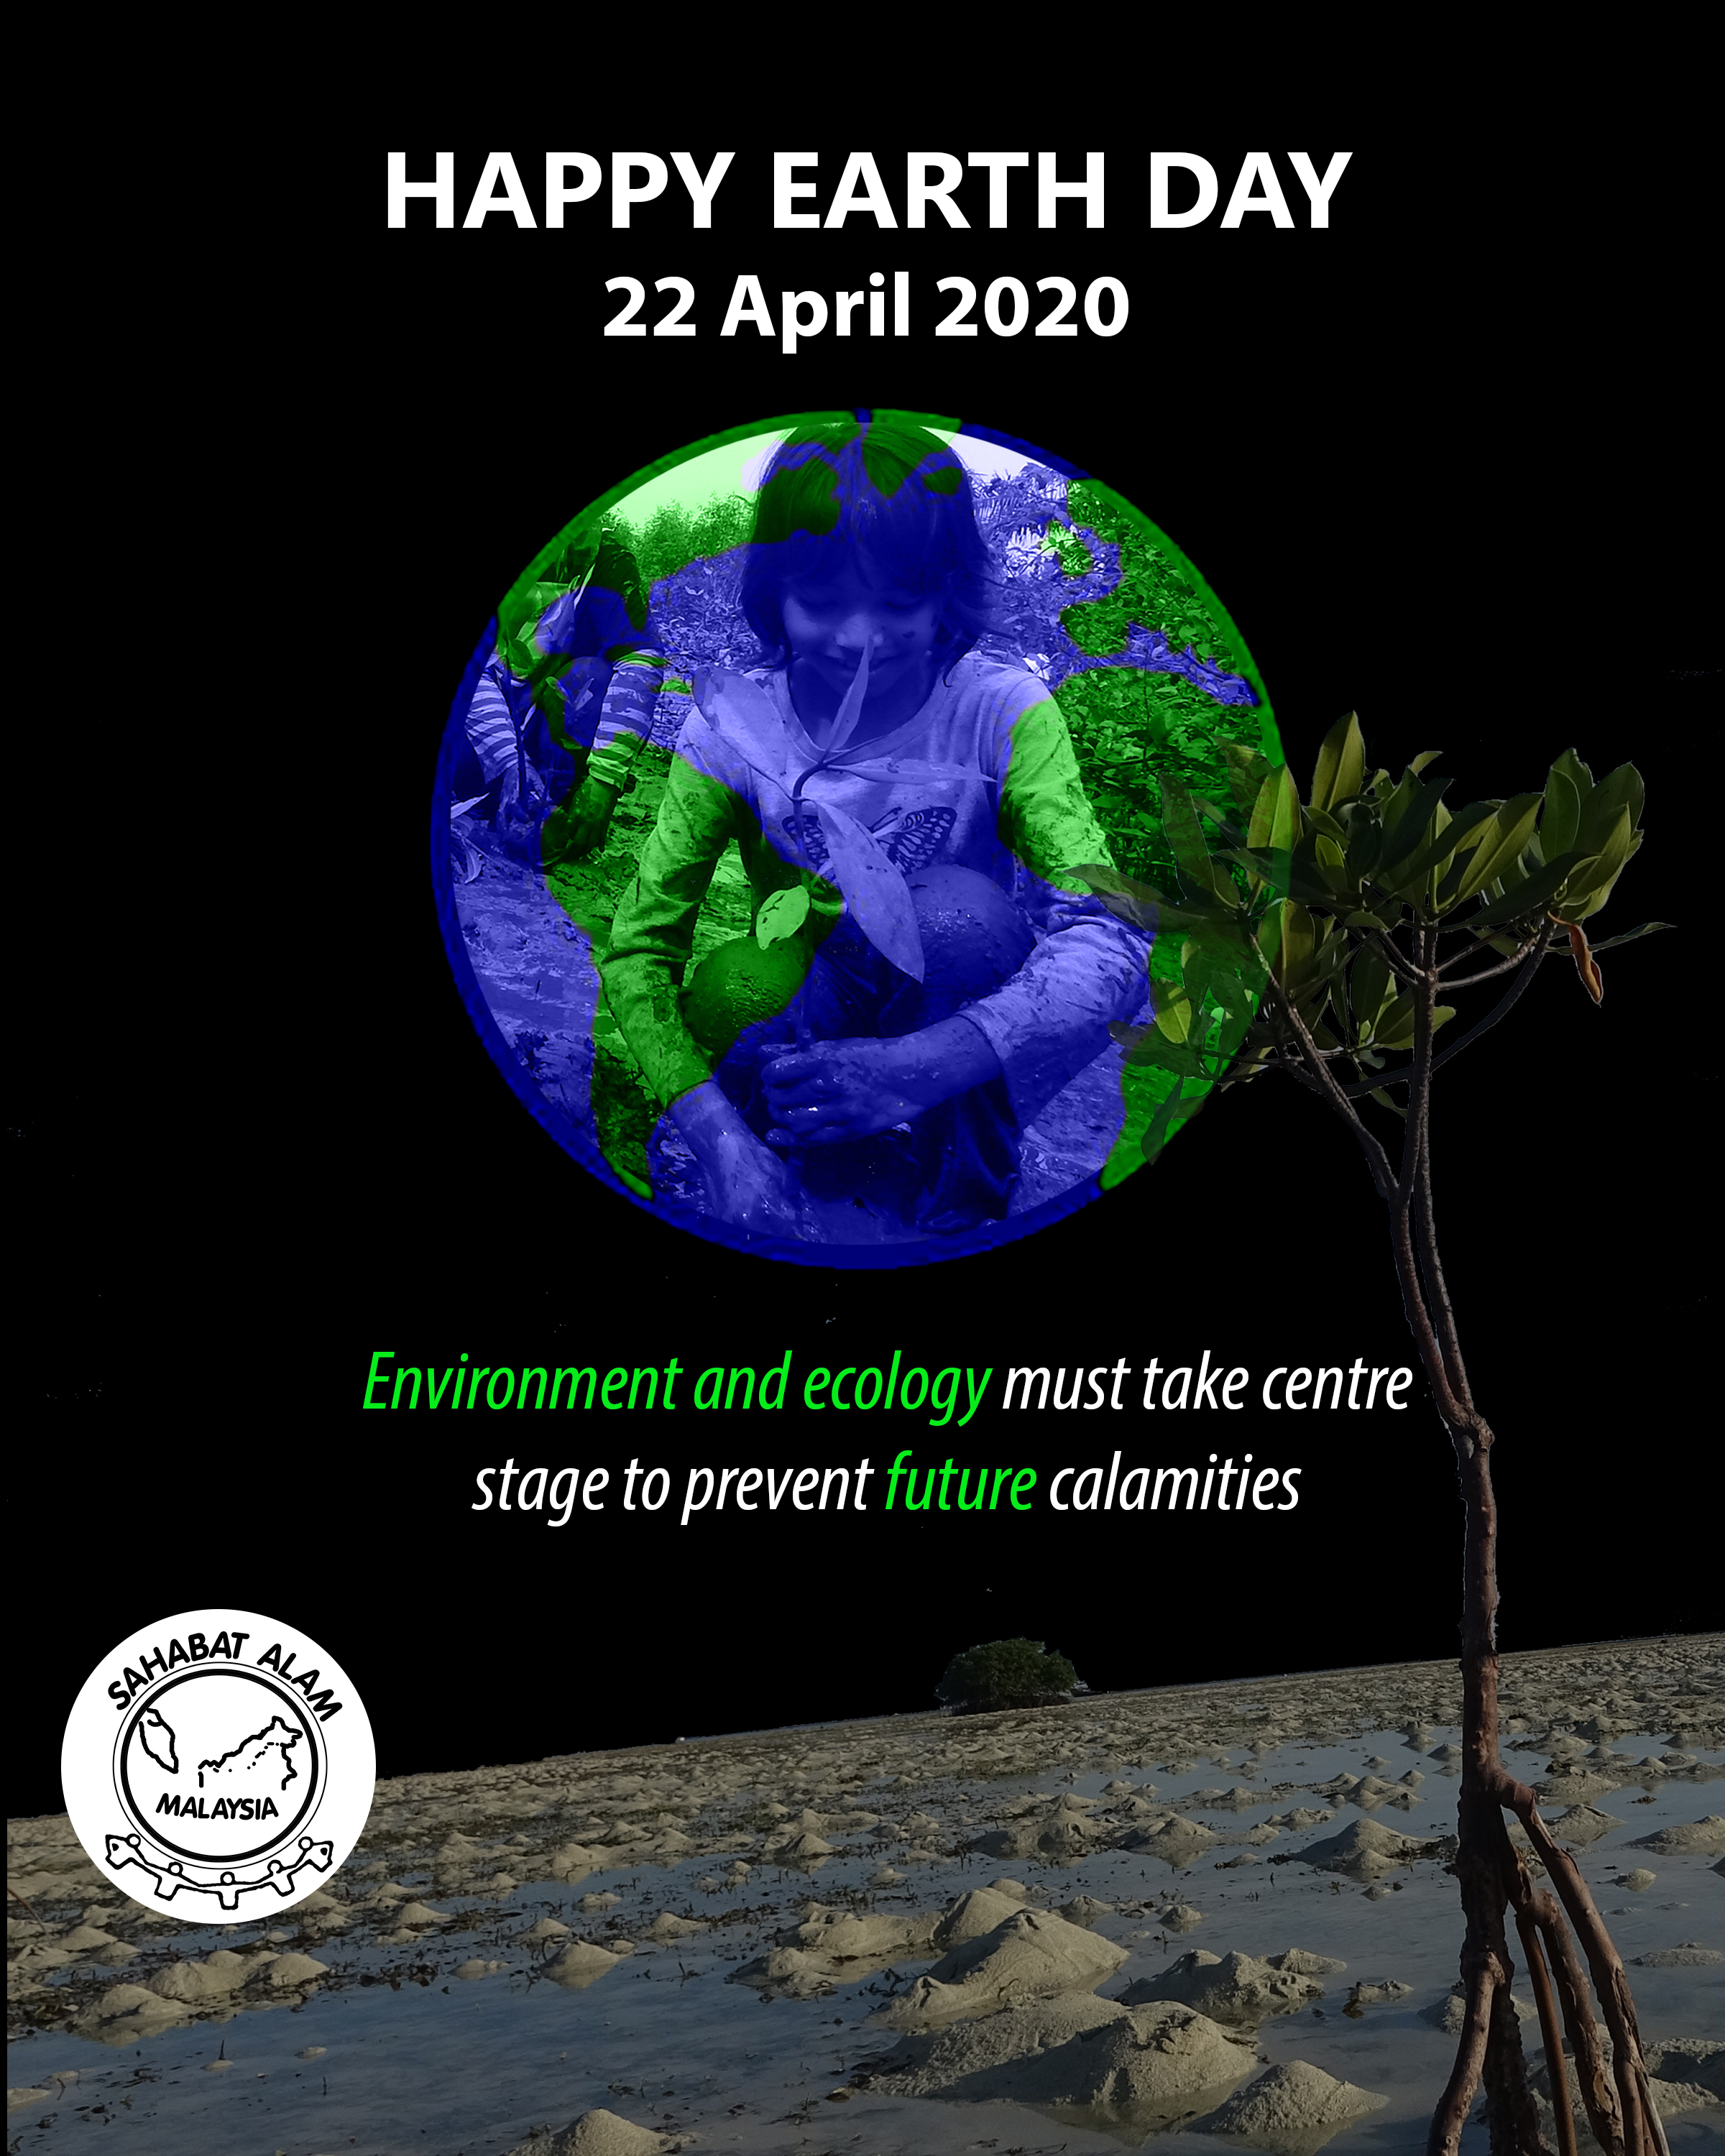 Happy Earth Day 2020